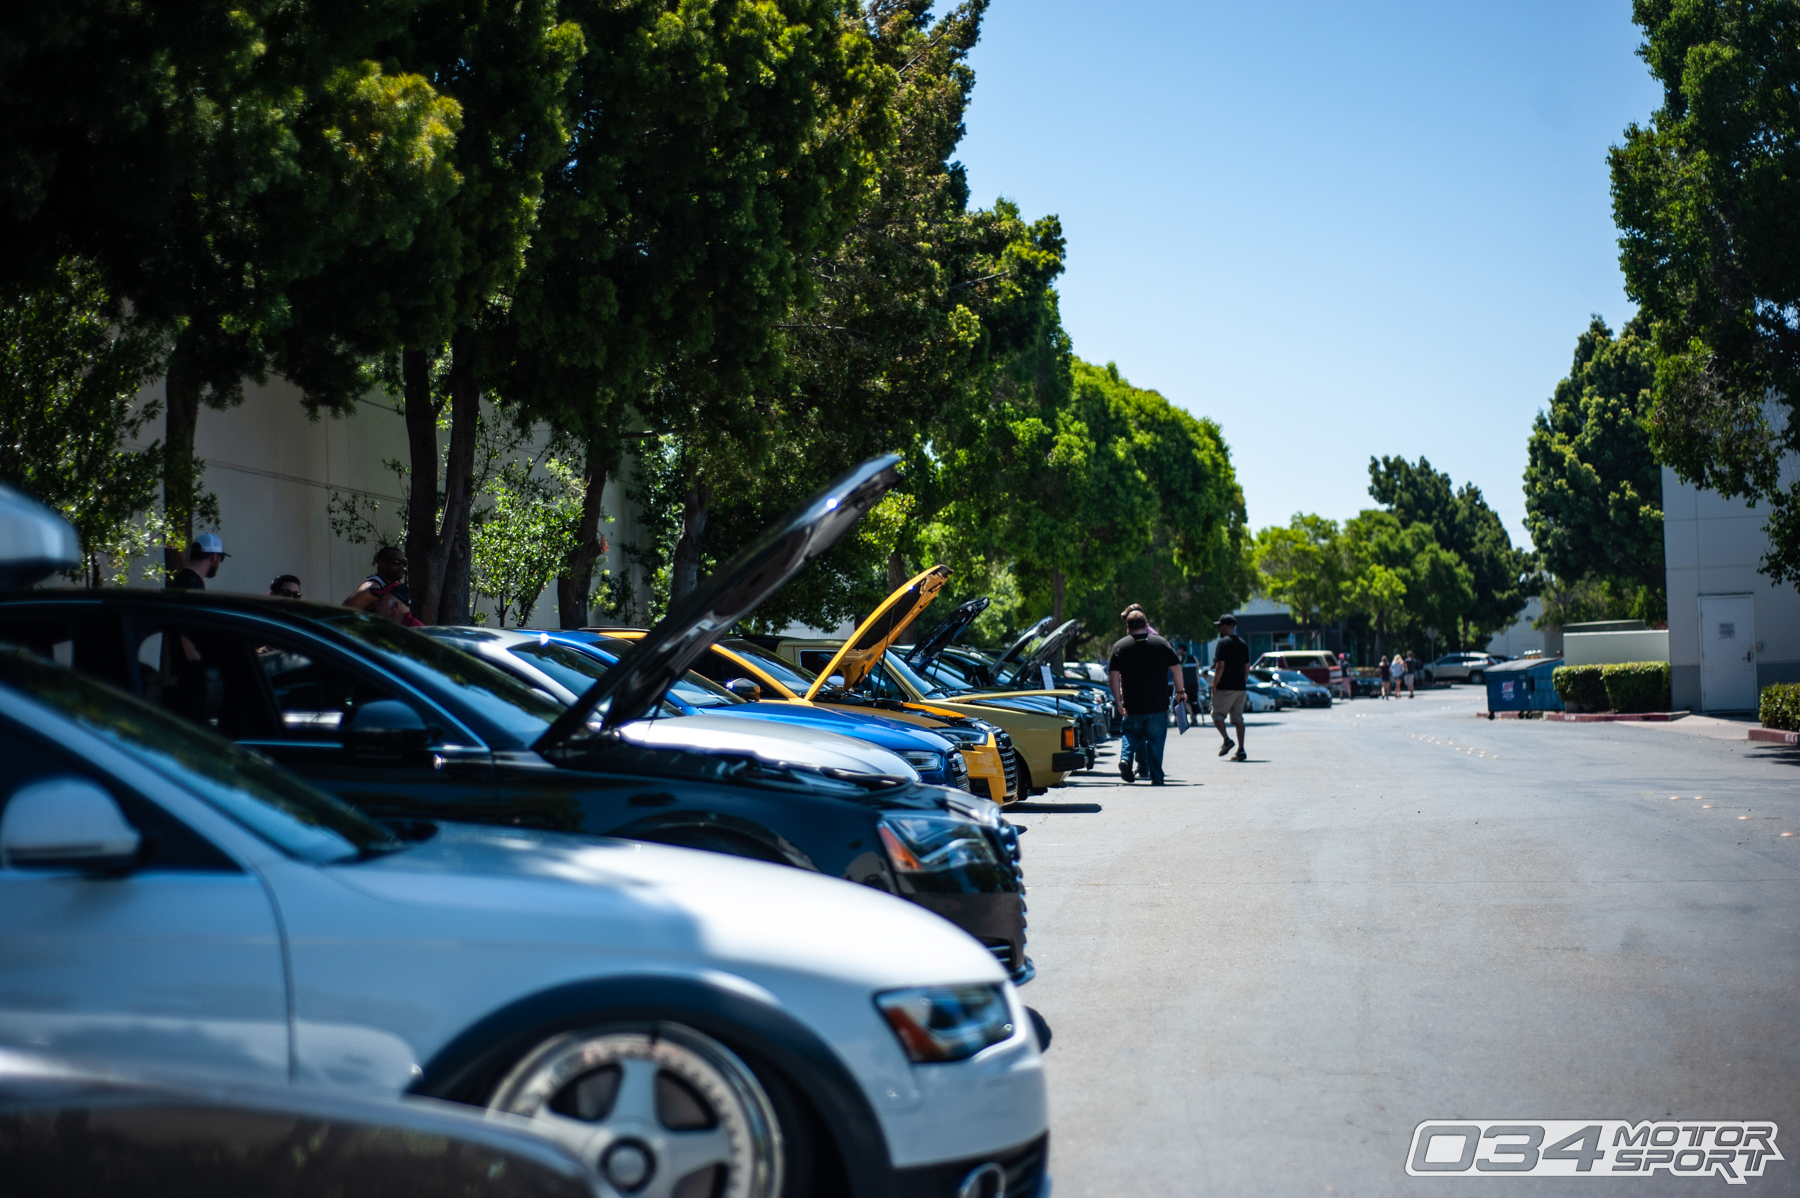 034Motorsport SummerFest Car Show